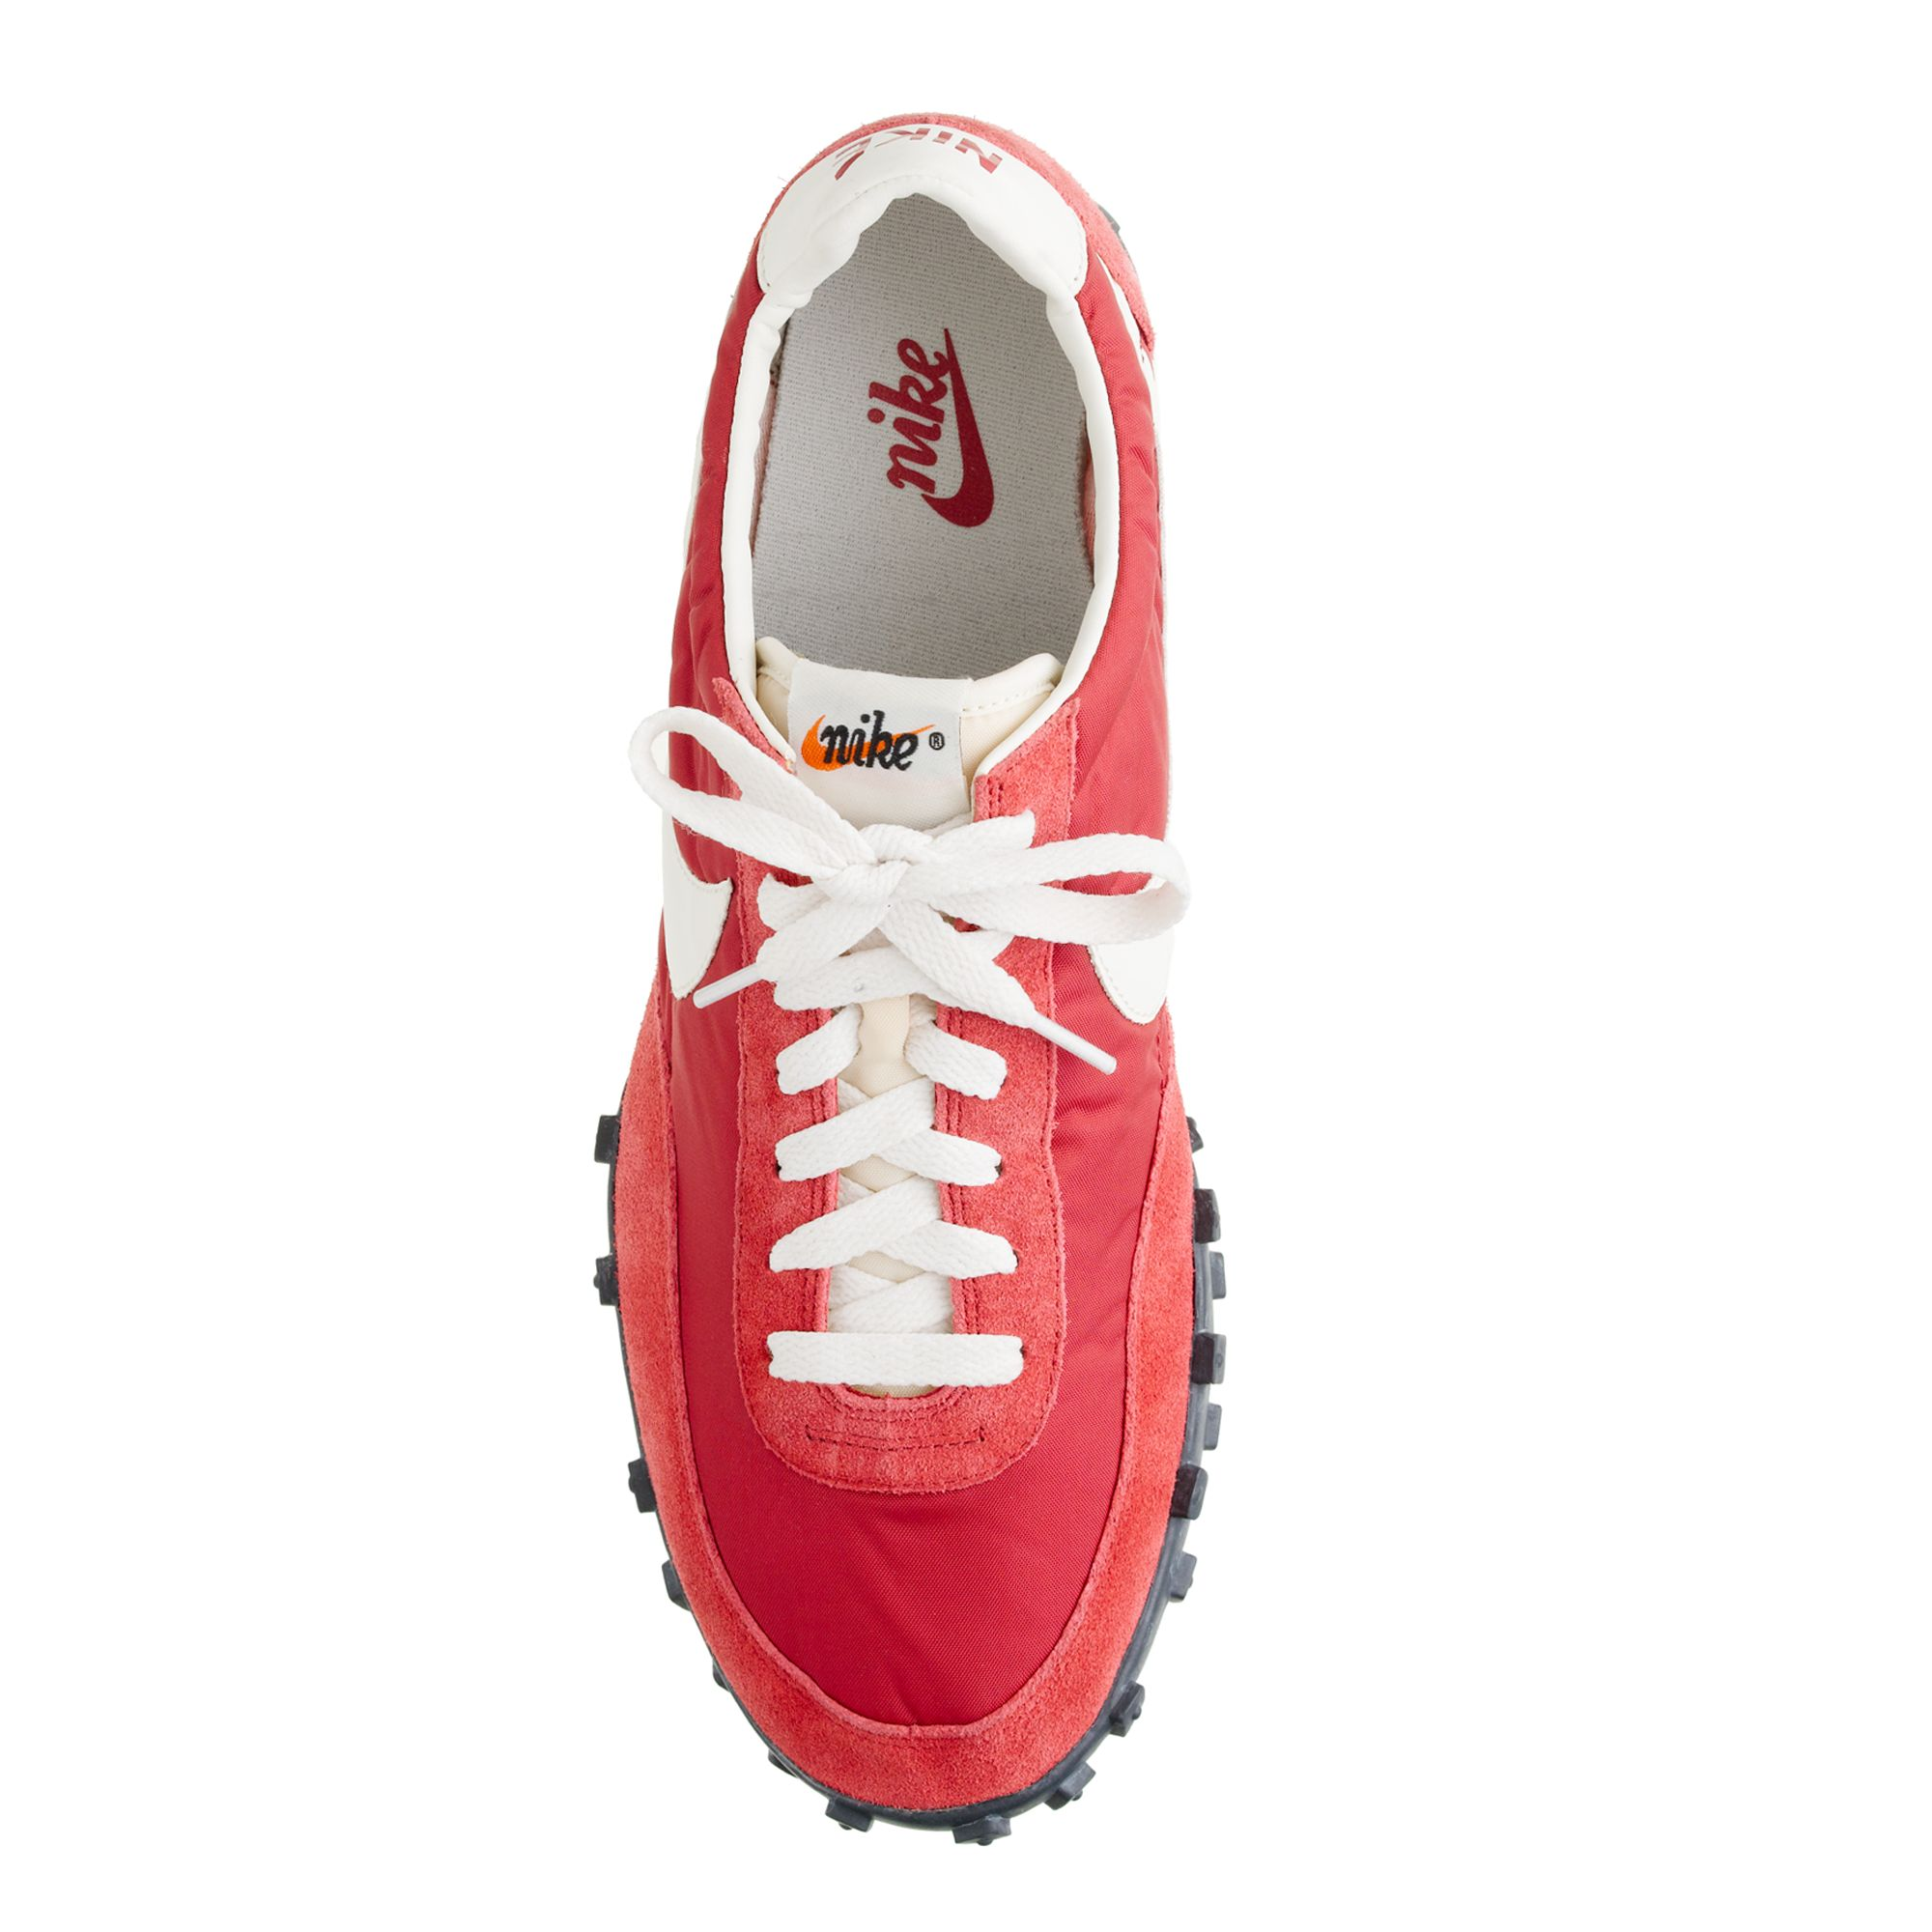 809c3ea9 J.Crew Nike® Vintage Collection Waffle® Racer Sneakers in Red for ...